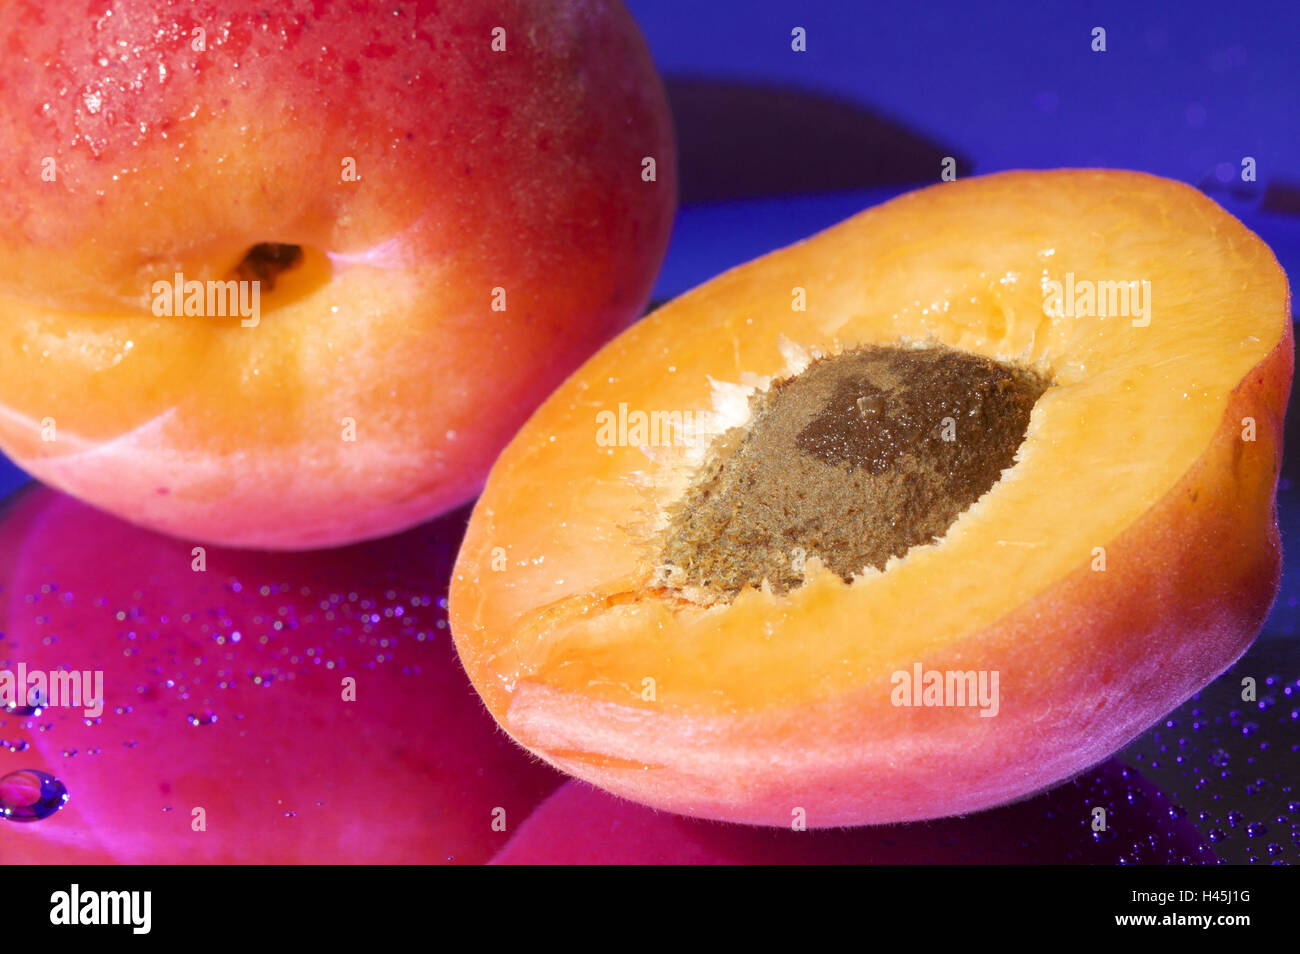 Apricots, completely, halves, core, close up, - Stock Image